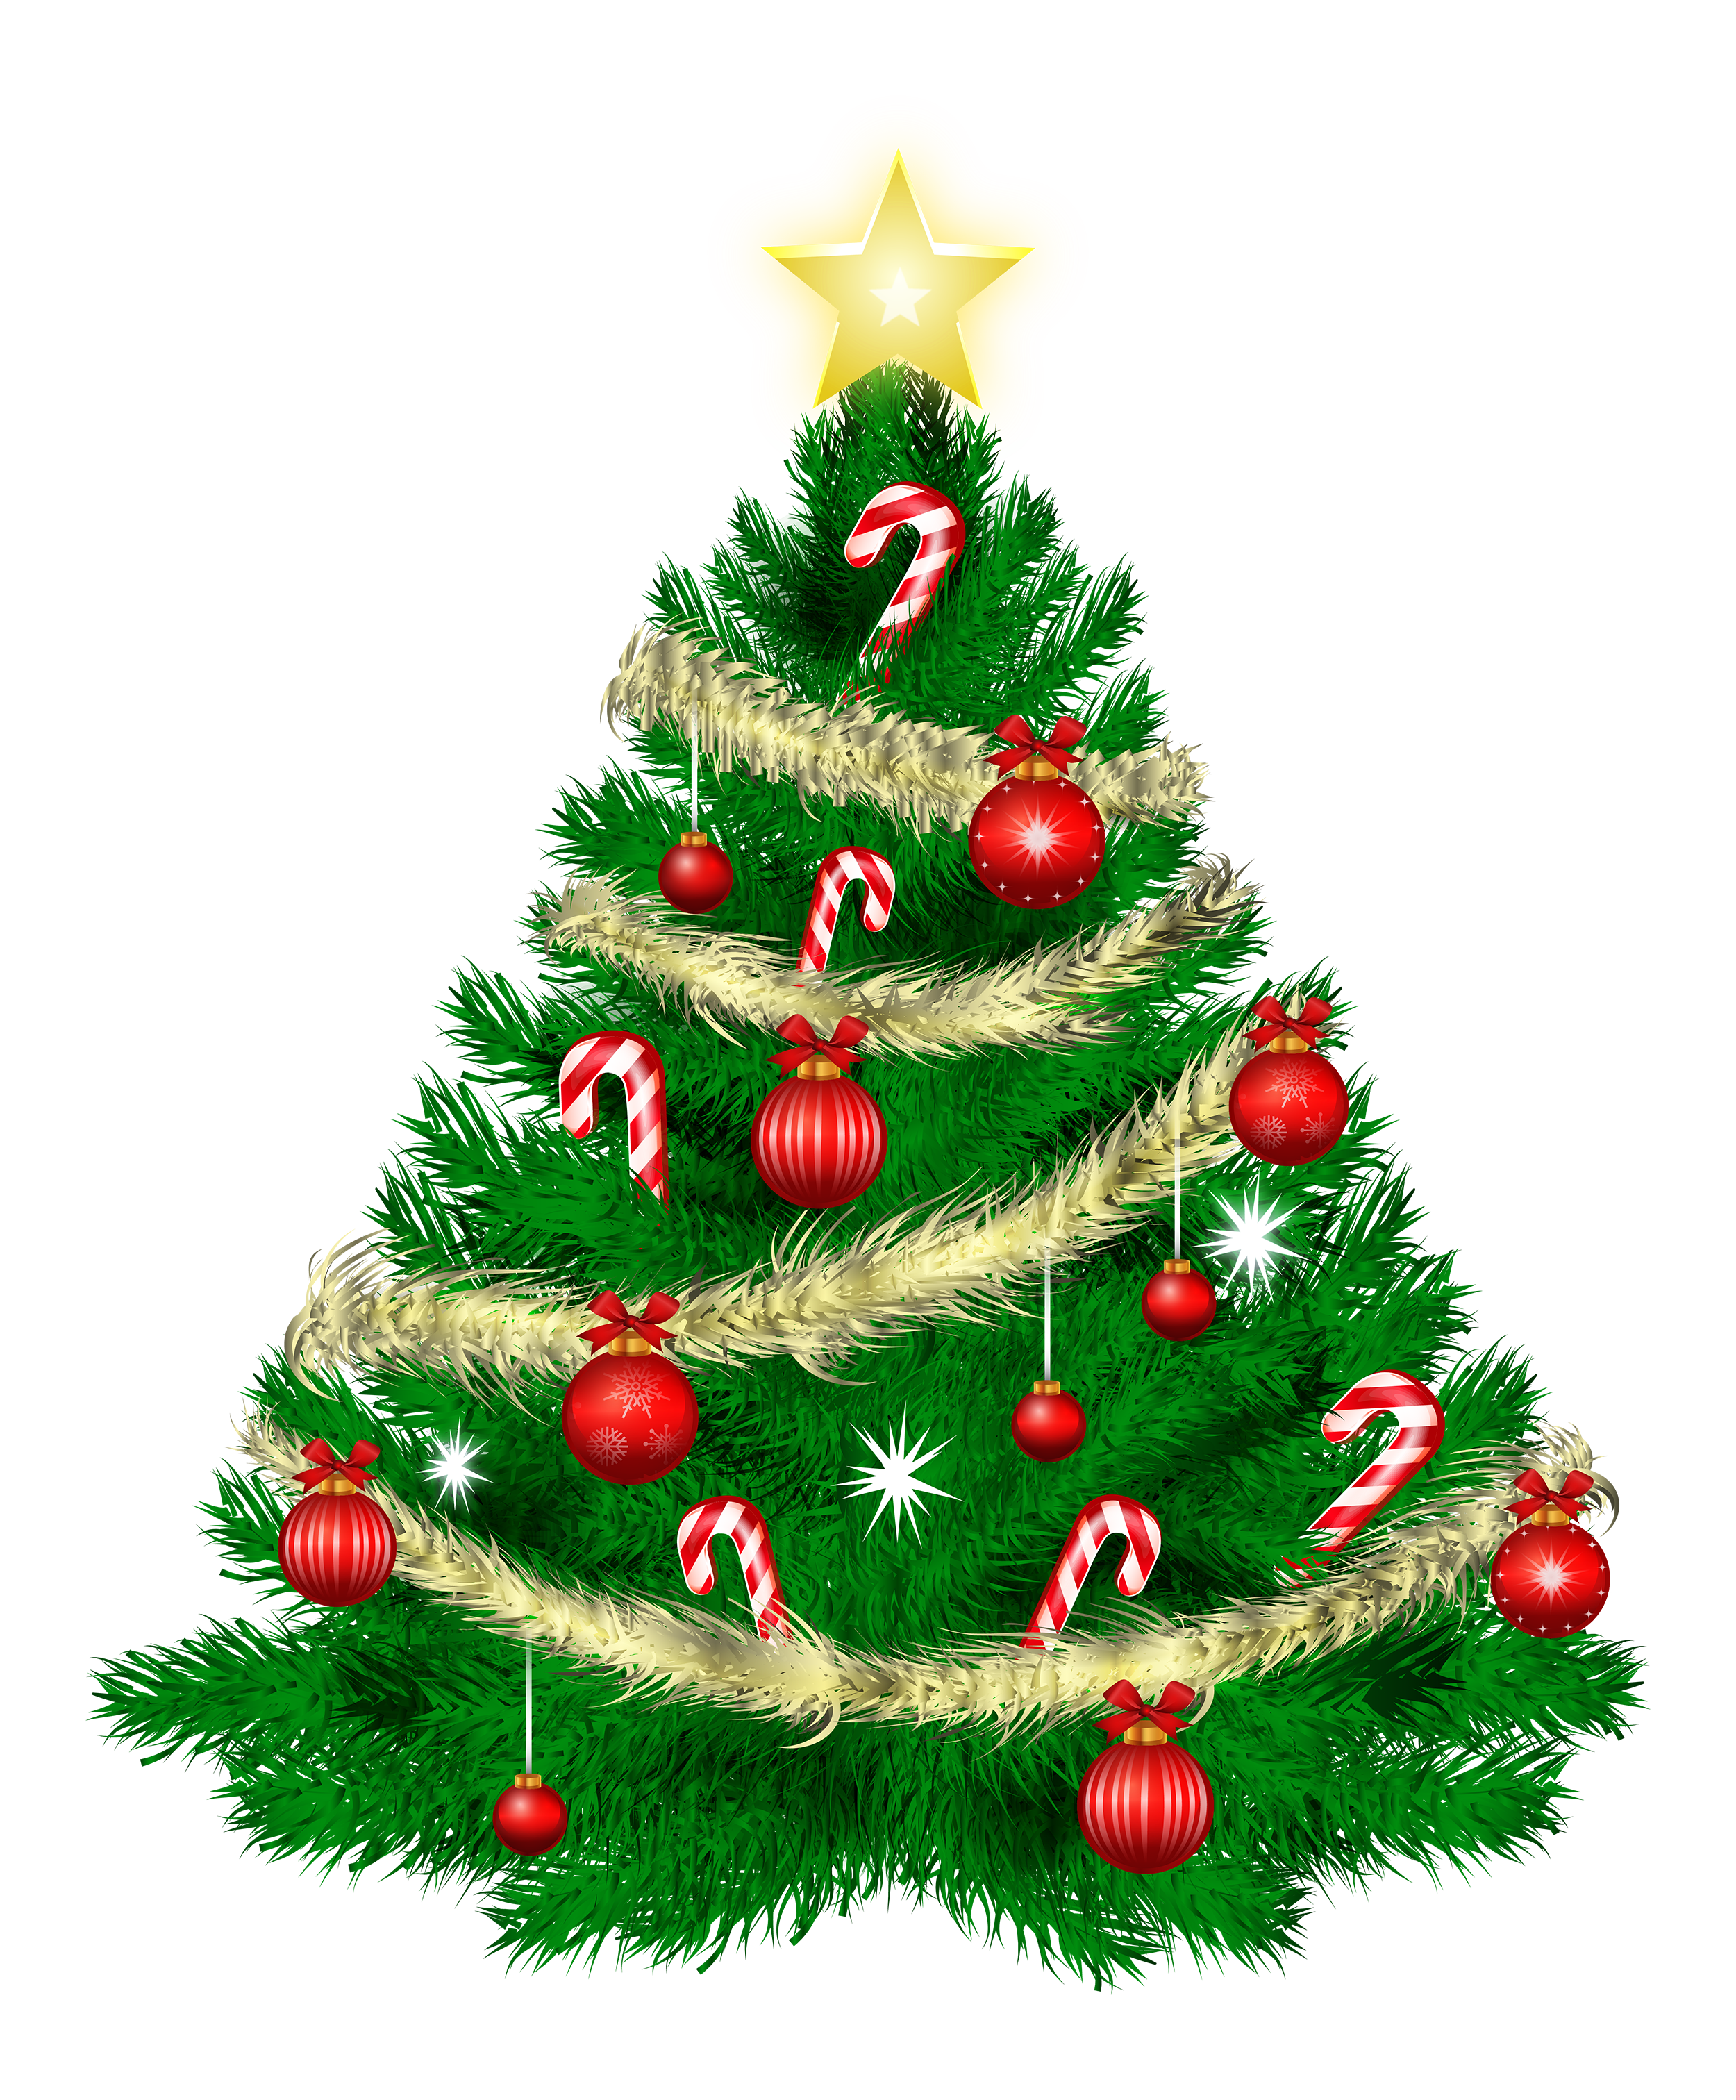 Christmas Tree Png image #31862 - Christmas Tree PNG